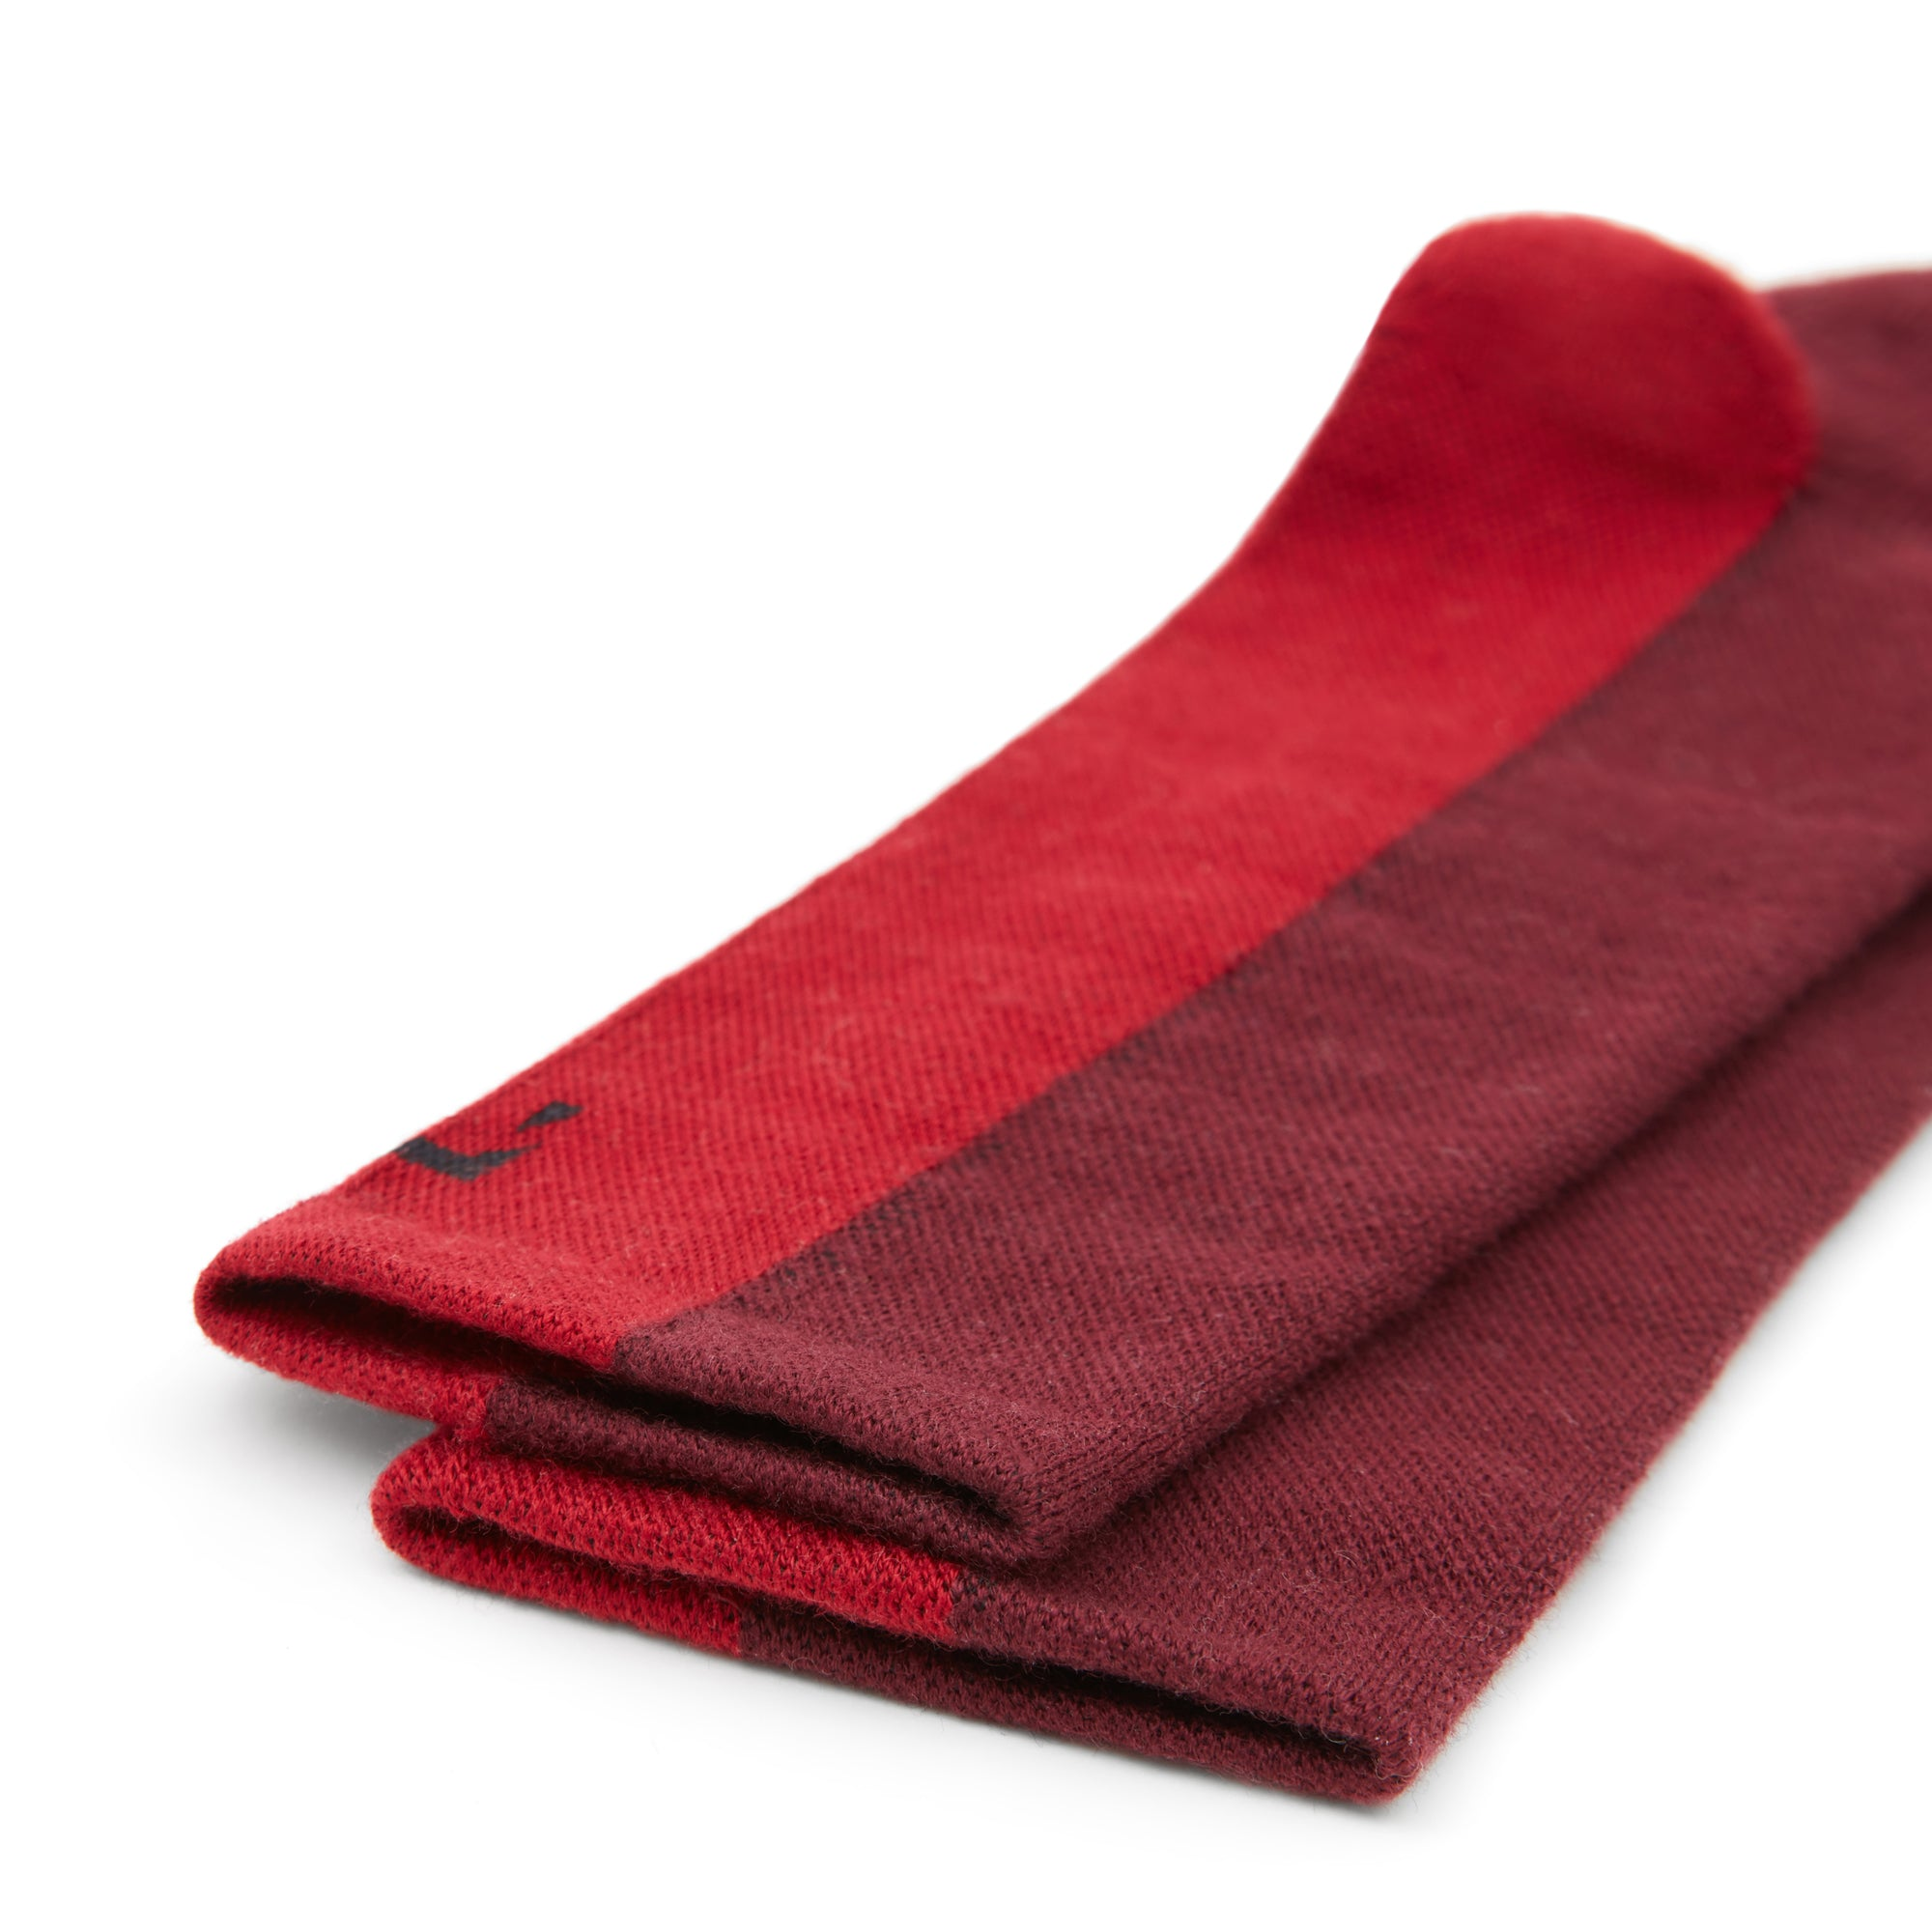 Merino Wool Cycling Socks - Red